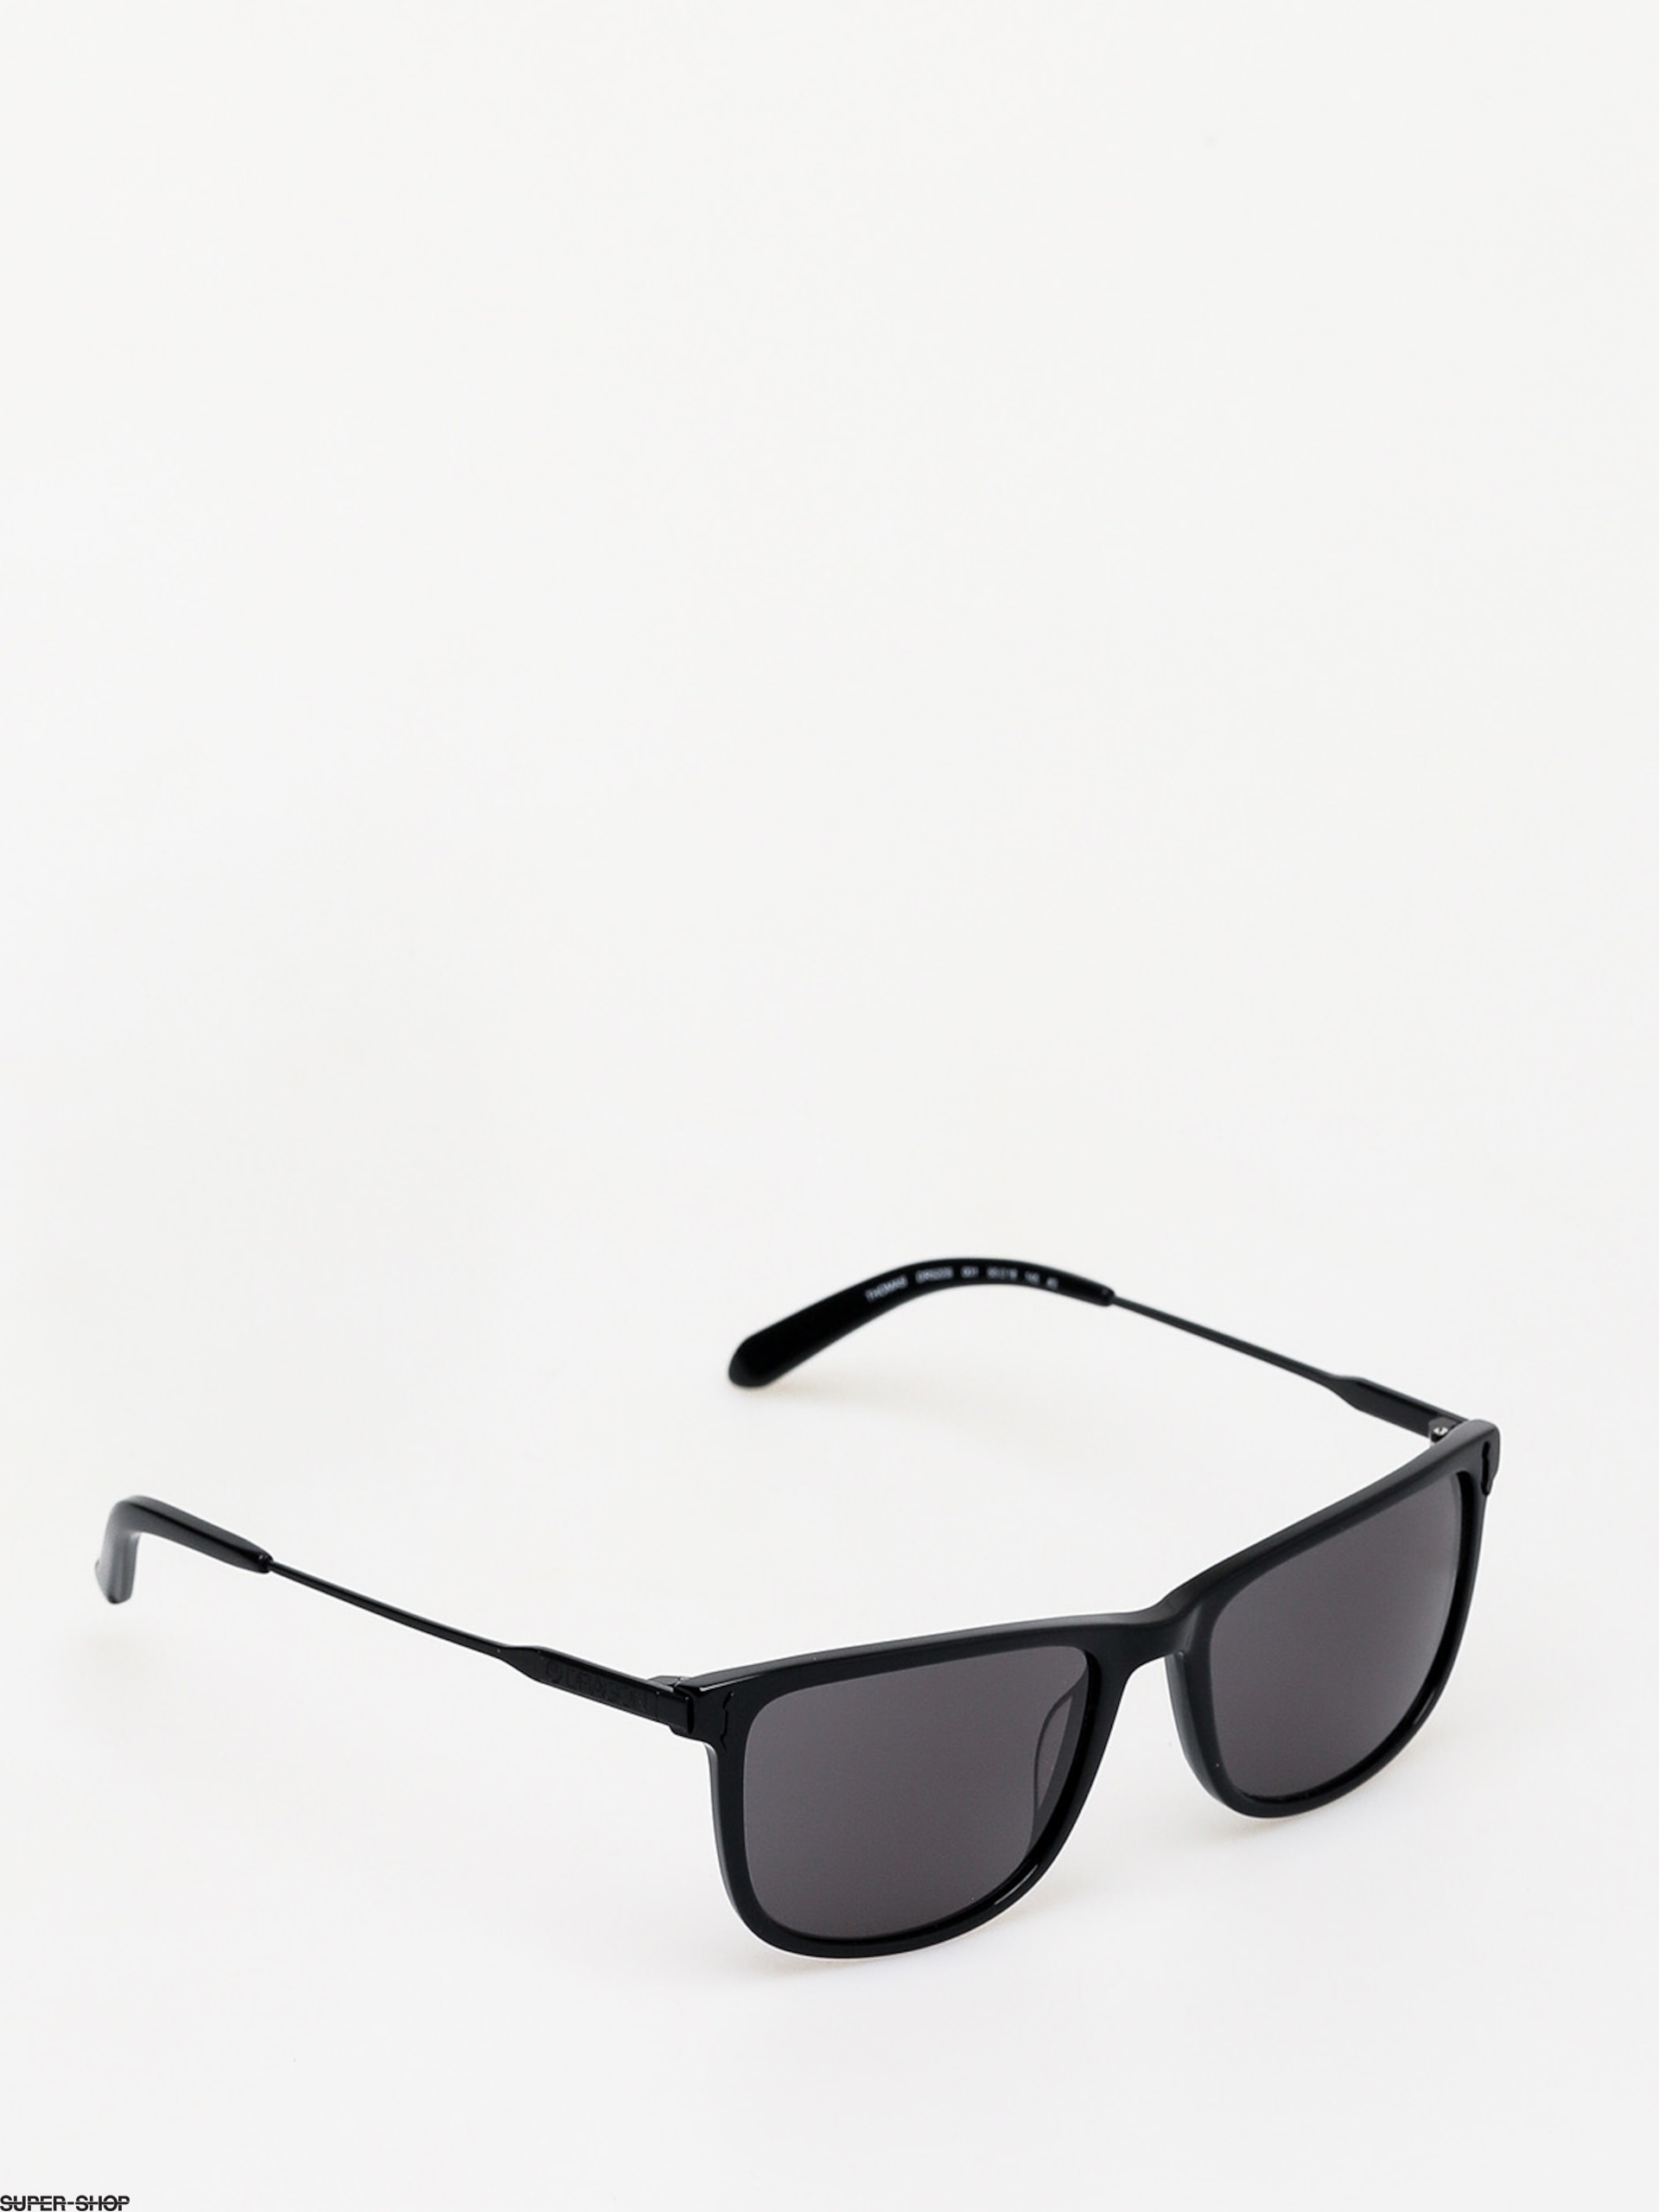 35cbc123f43d 1062606-w1920-dragon-thomas-sunglasses-shiny-black-grey.jpg